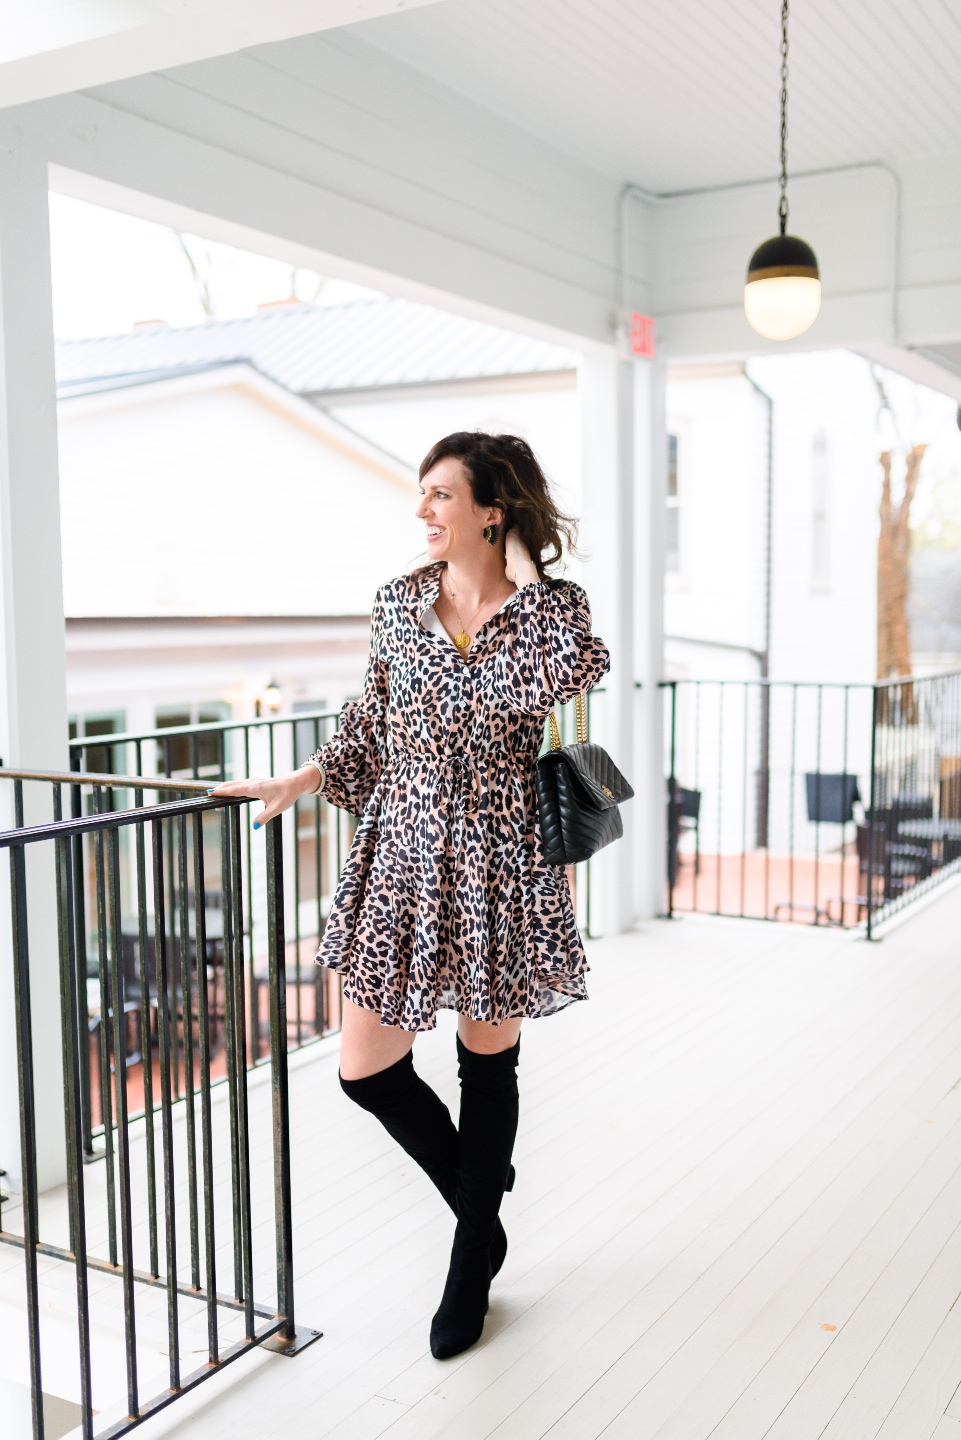 Places to Stay: The Colonial Inn in Hillsborough NC - I'm Fixin' To - @imfixintoblog |The Colonial Inn Hillsborough NC by popular NC travel blog, I'm Fixin' To: image of a woman wearing a leopard print dress and black over the knee boots.